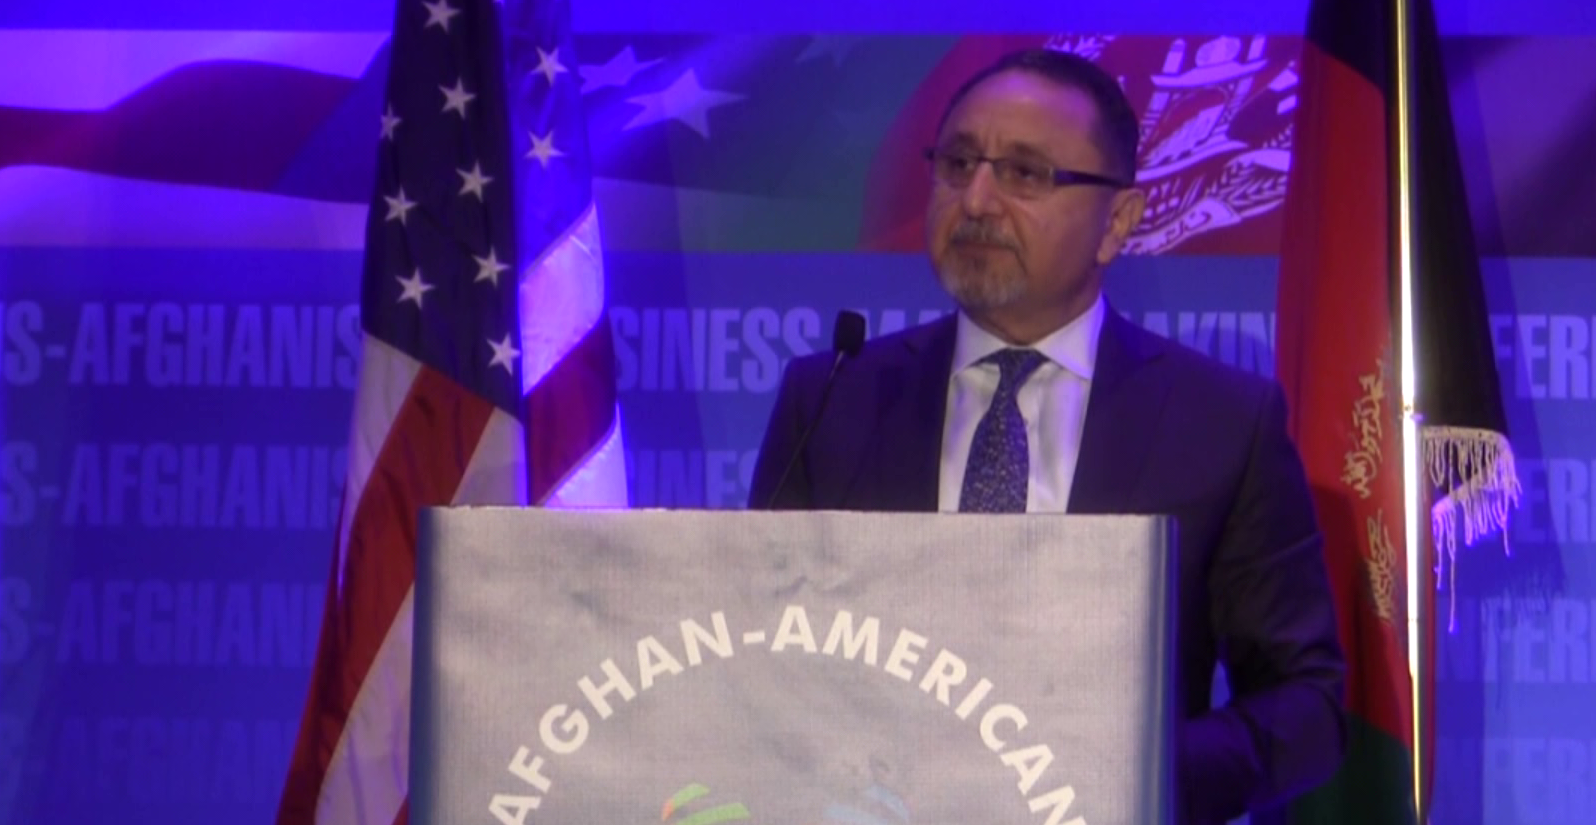 BAYAT GROUP FOUNDER AND CHAIRMAN DR. EHSAN BAYAT DELIVERS KEYNOTE ADDRESS TO AFGHAN AMERICAN CHAMBER OF COMMERCE ANNUAL BUSINESS CONFERENCE